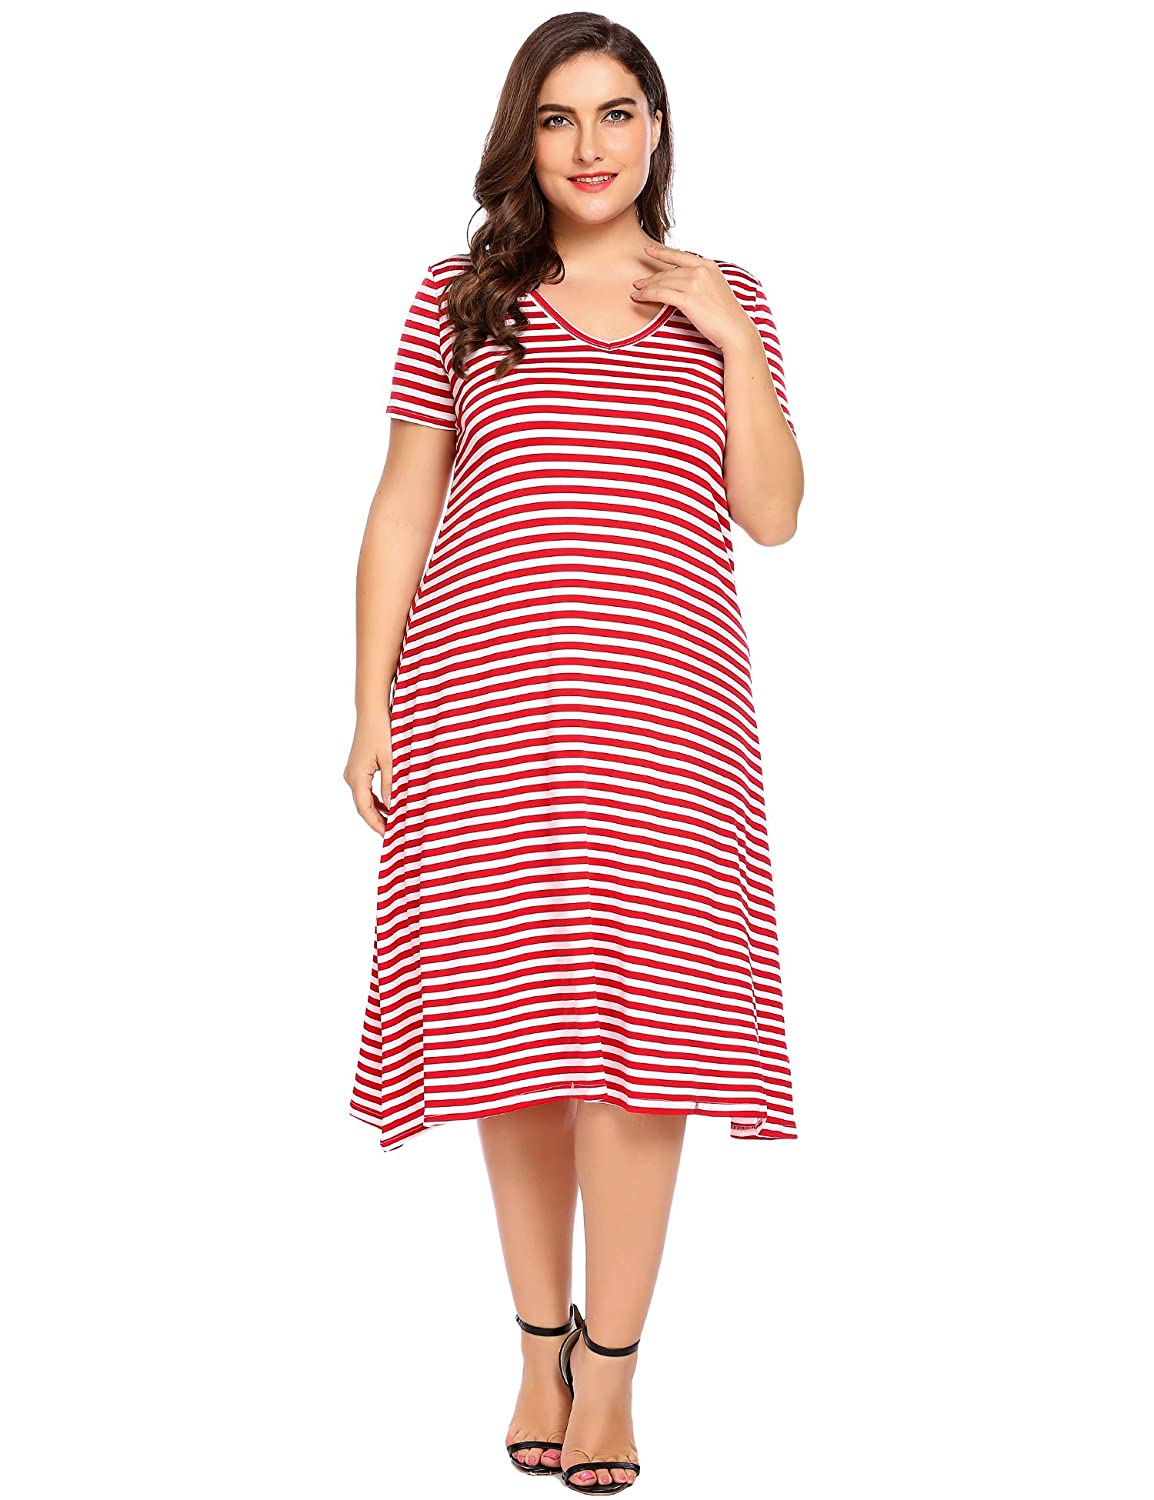 909fd893 Women Plus Sizes Casual V-Neck Short Sleeve Awing Dress Striped A-Line Midi  T-Shirt Dress at Amazon Women's Clothing store: